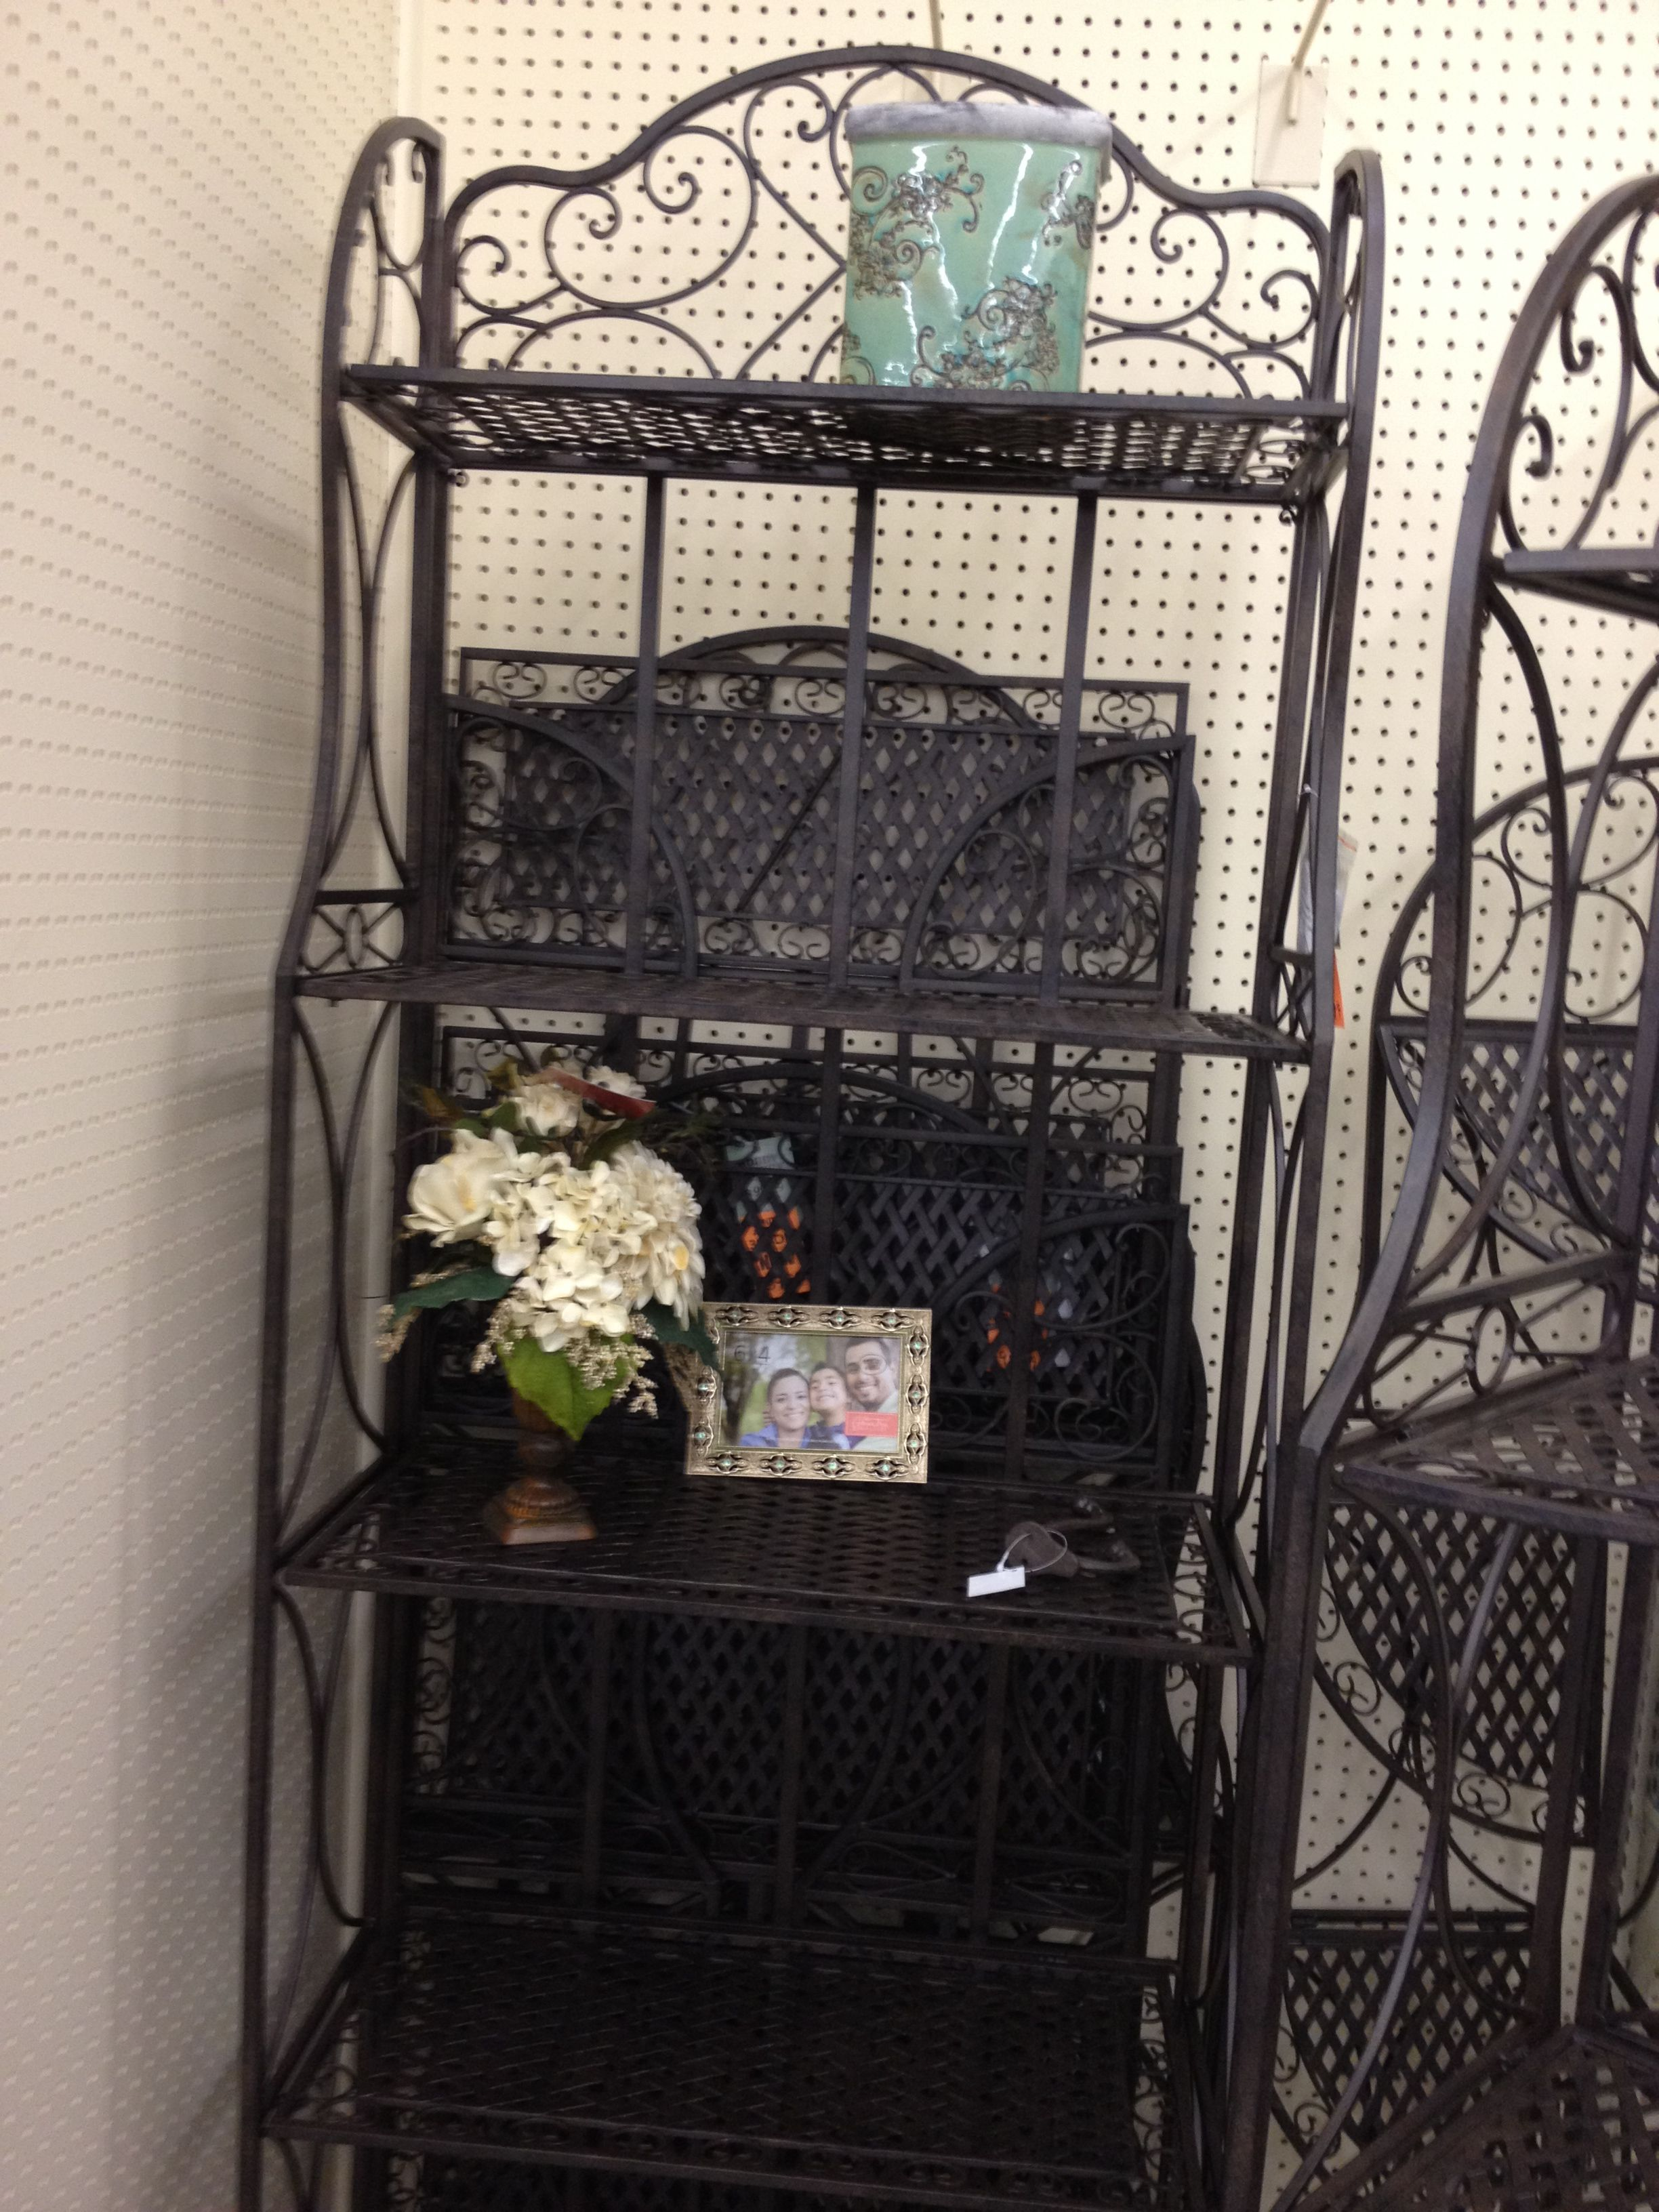 Shelves For Patio From Hobby Lobby For The Home Hobby